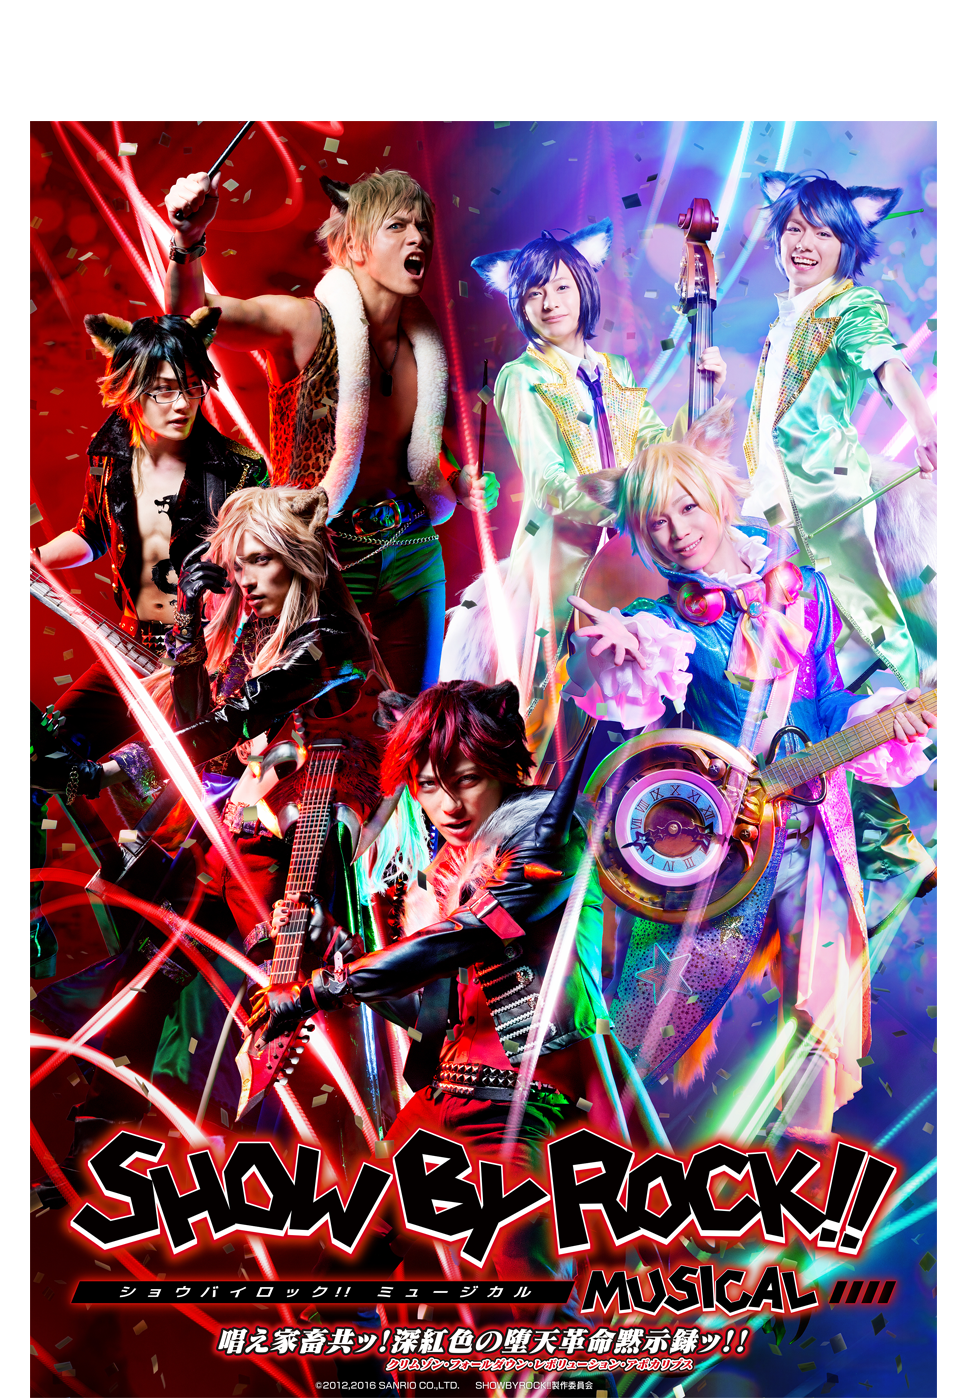 SHOW BY ROCK!!の画像 p1_31